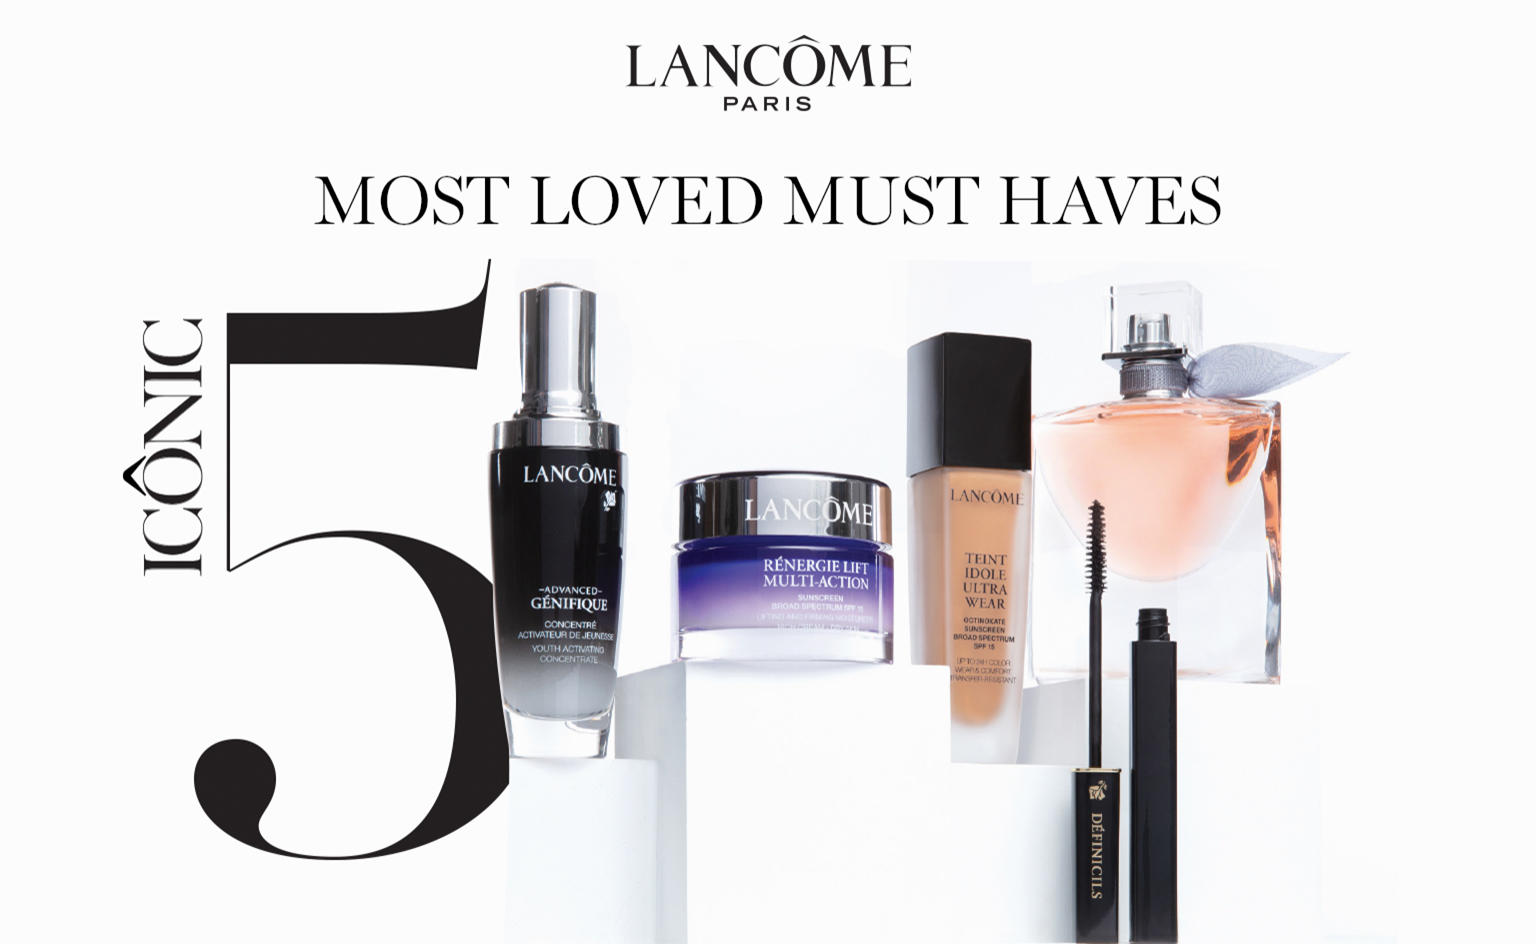 Lancome Paris. Most loved must haves. Iconic 5.